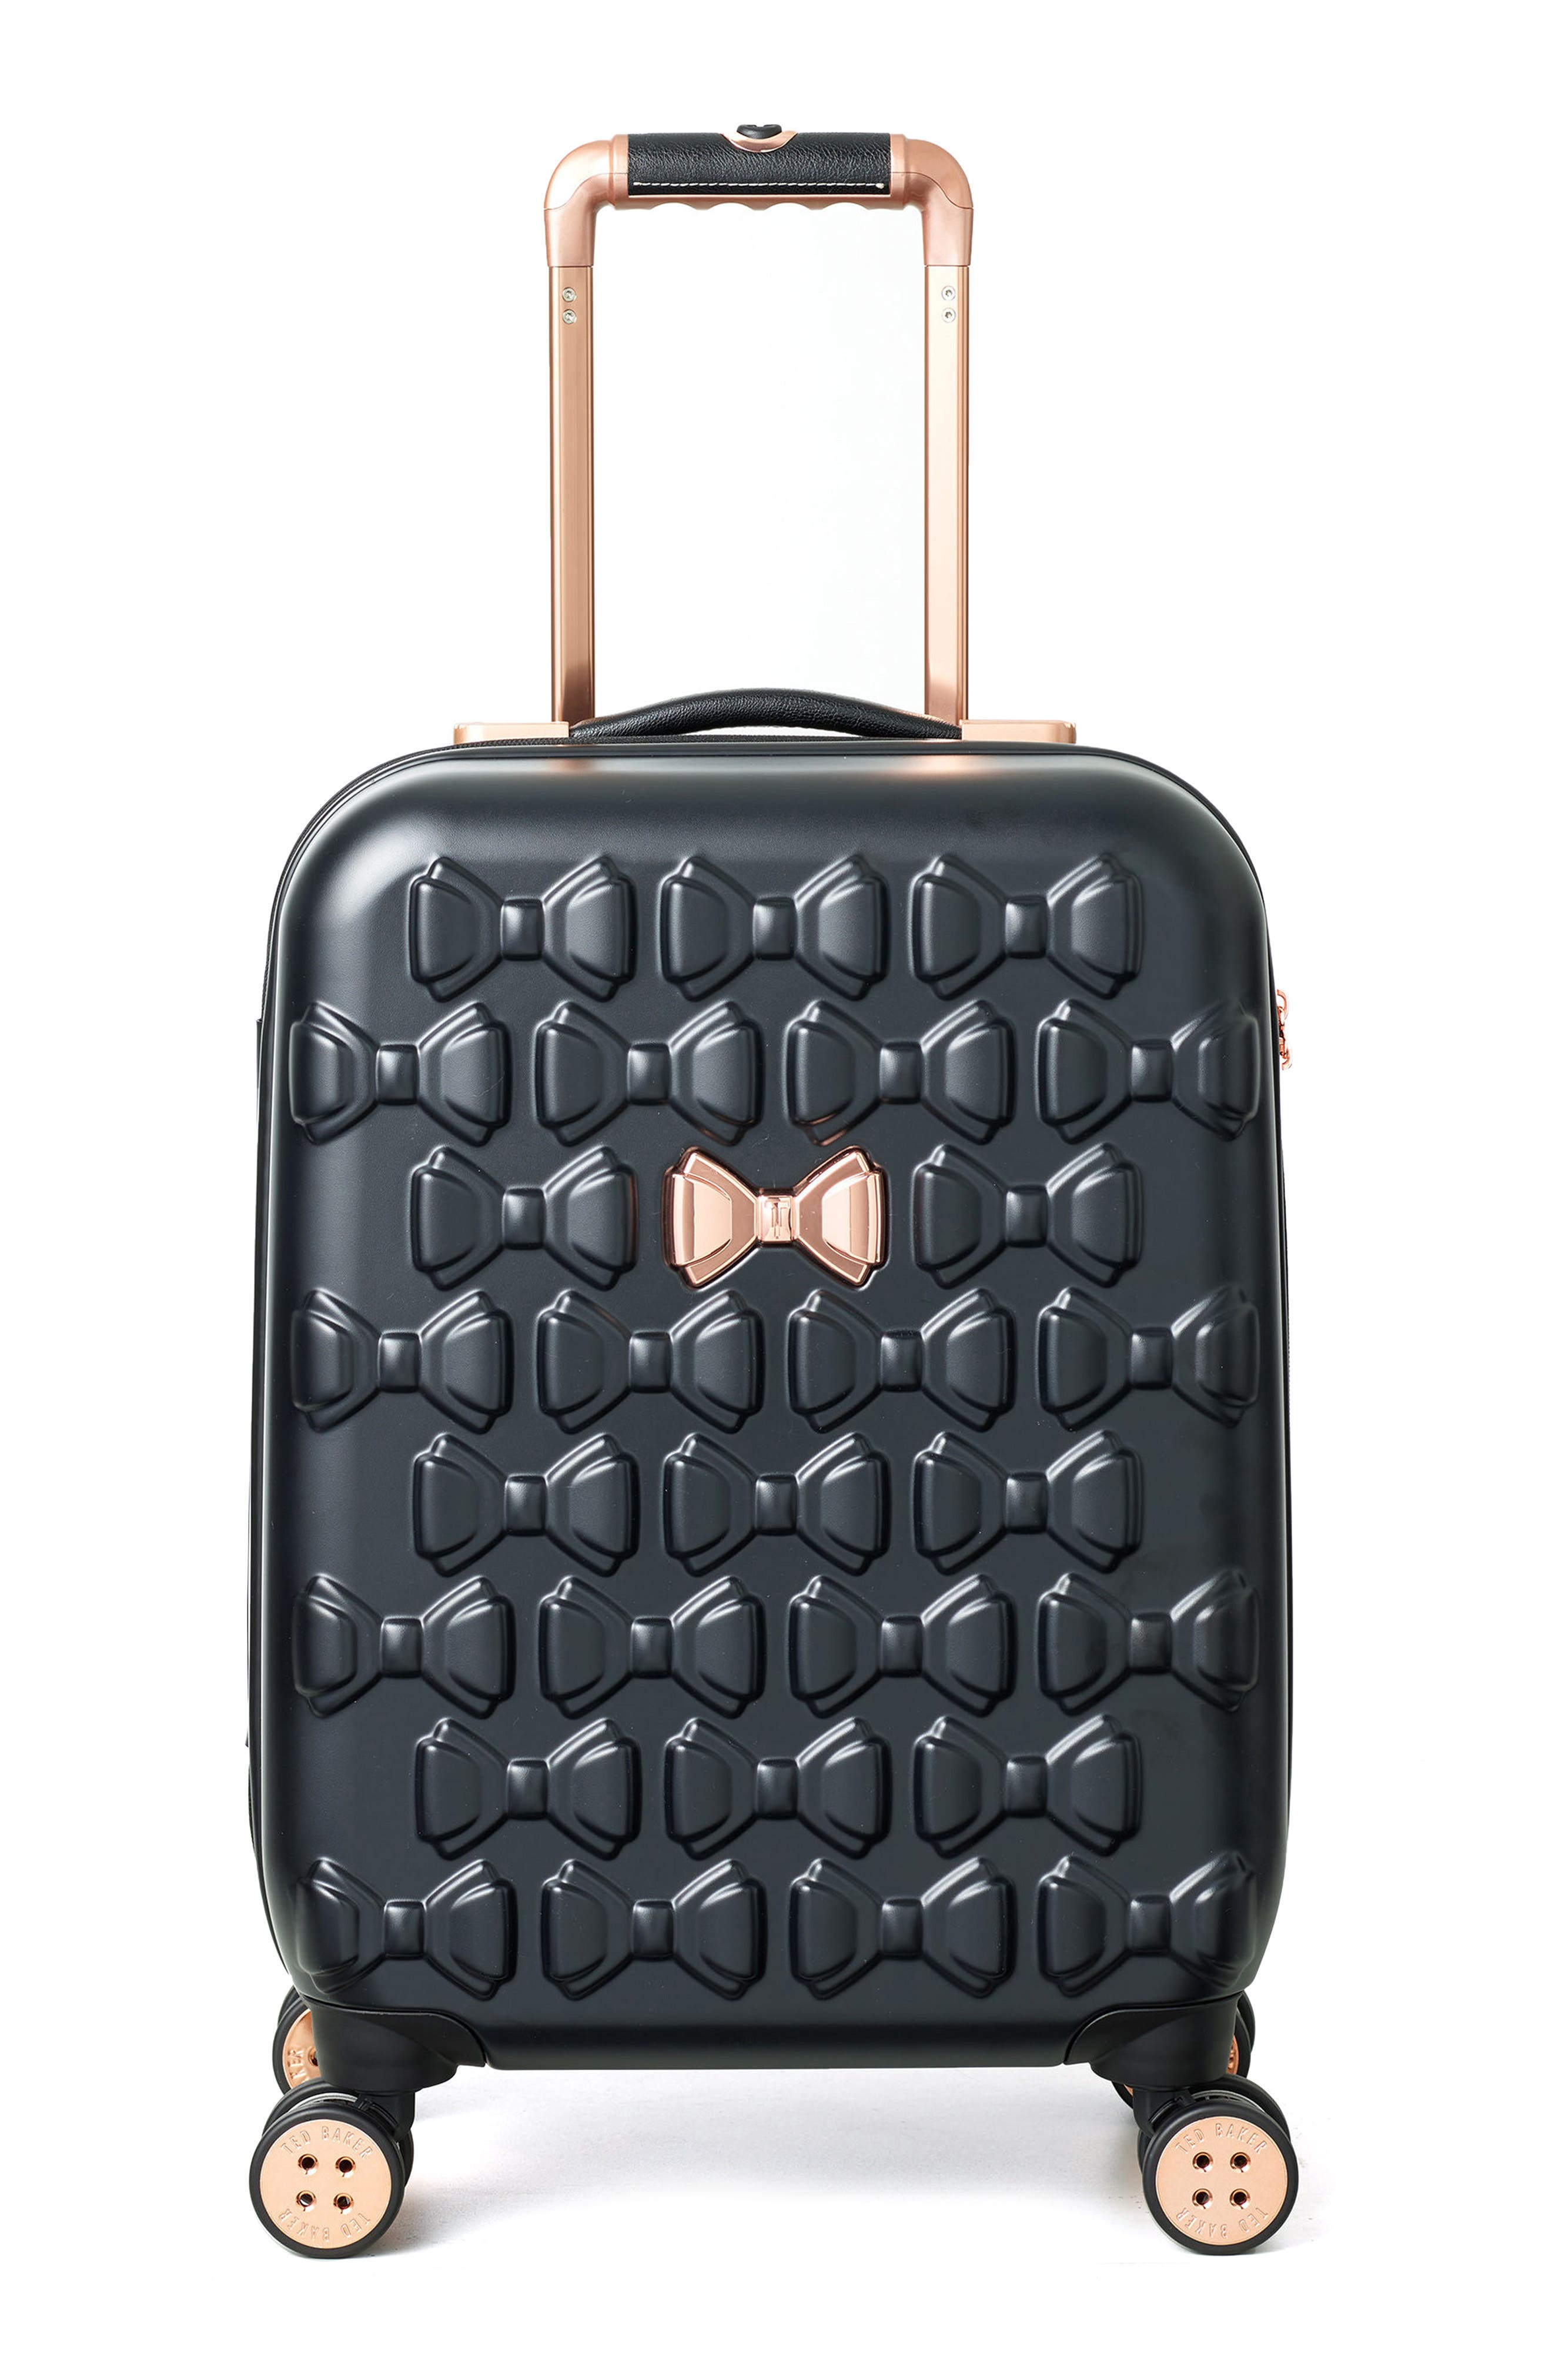 TED BAKER LONDON Small Beau 22-Inch Bow Embossed Four-Wheel Trolley Suitcase, Main, color, BLACK